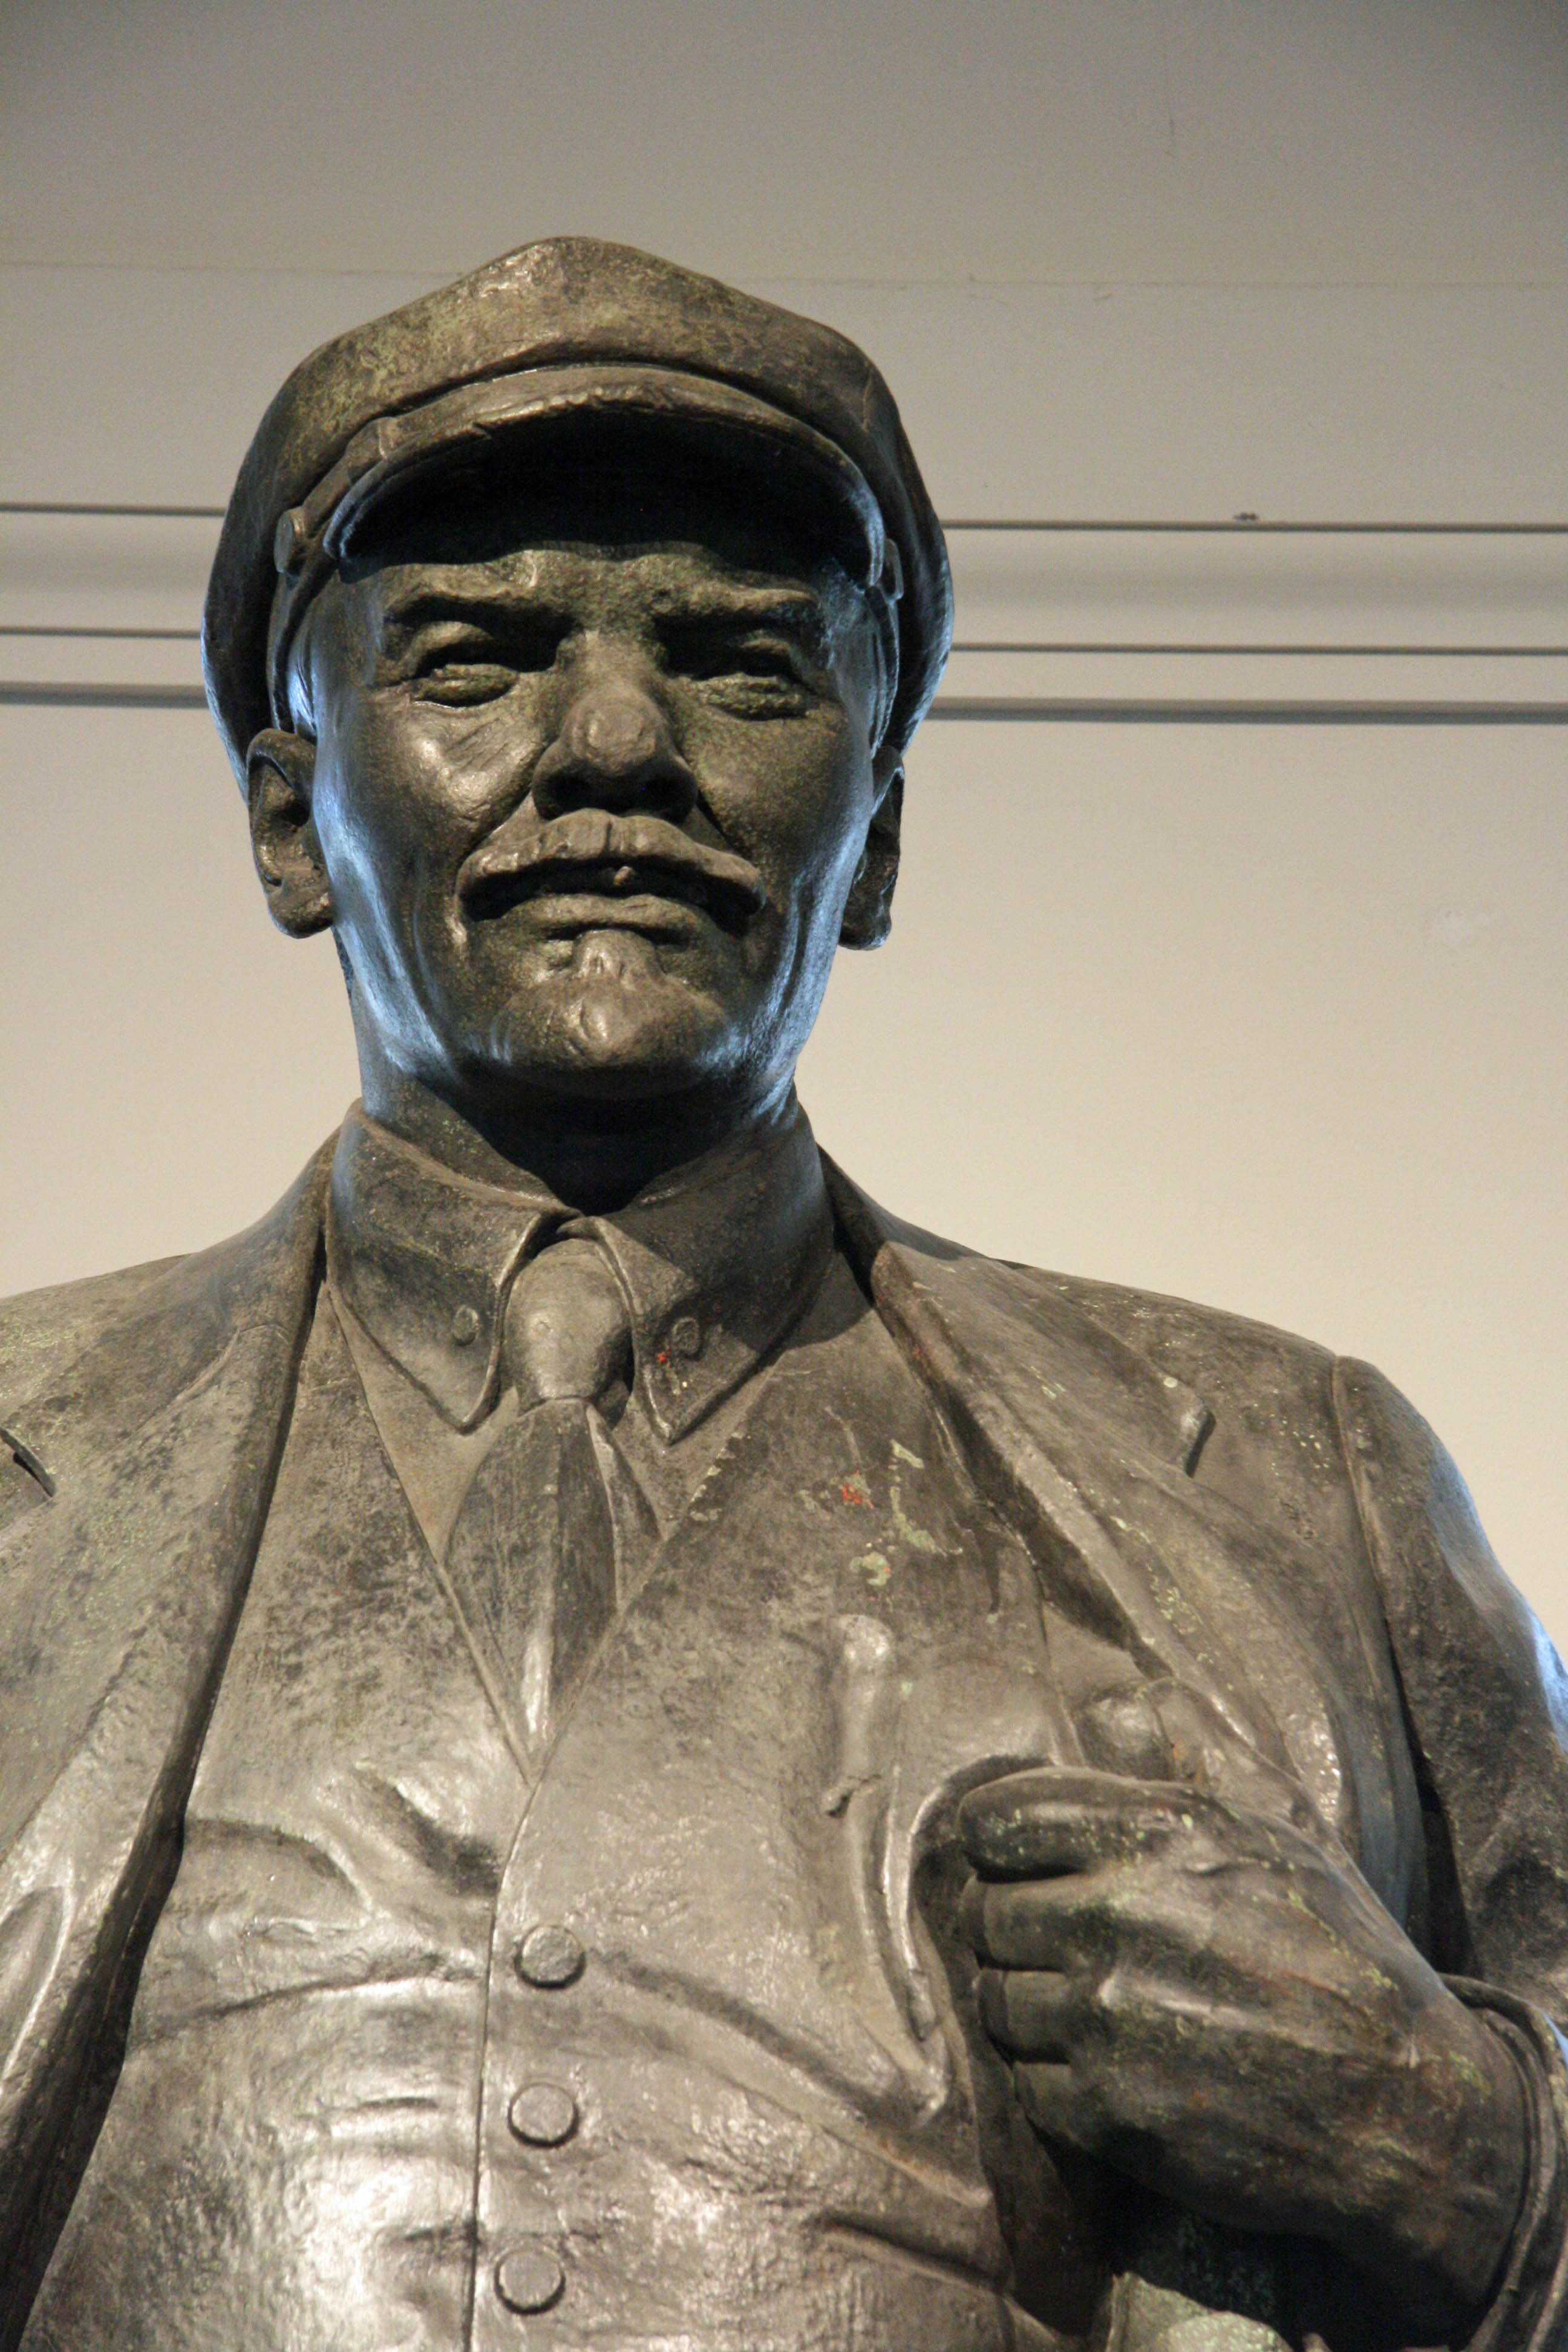 A statue of Lenin in the lobby of the Deutsches Historisches Museum (German Historical Museum) in Berlin